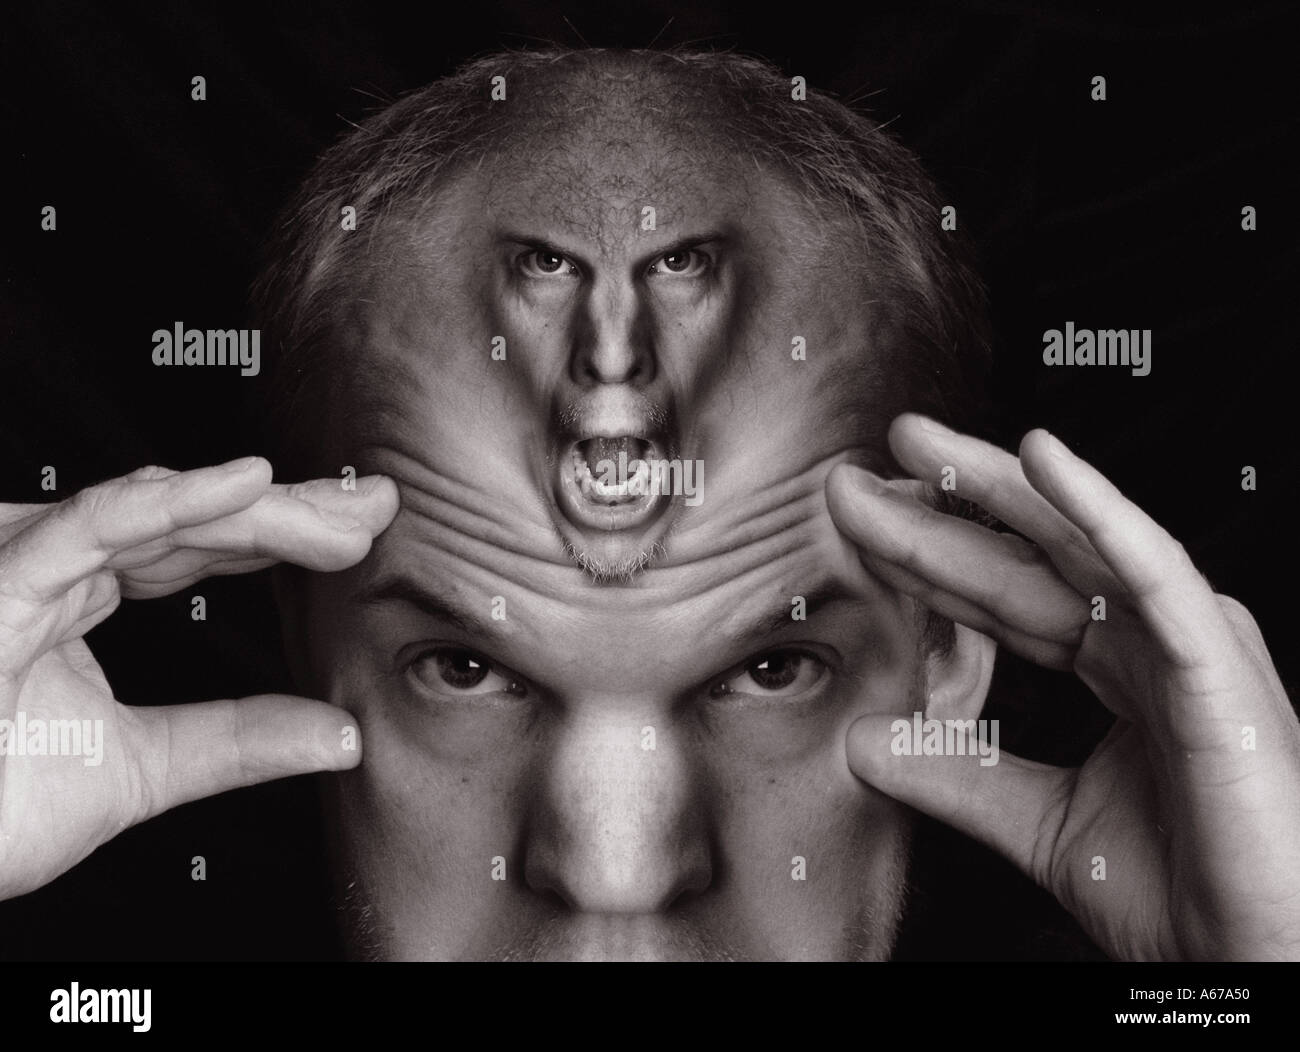 Surreal Monster like screaming man in another man s forehead Headache - Stock Image